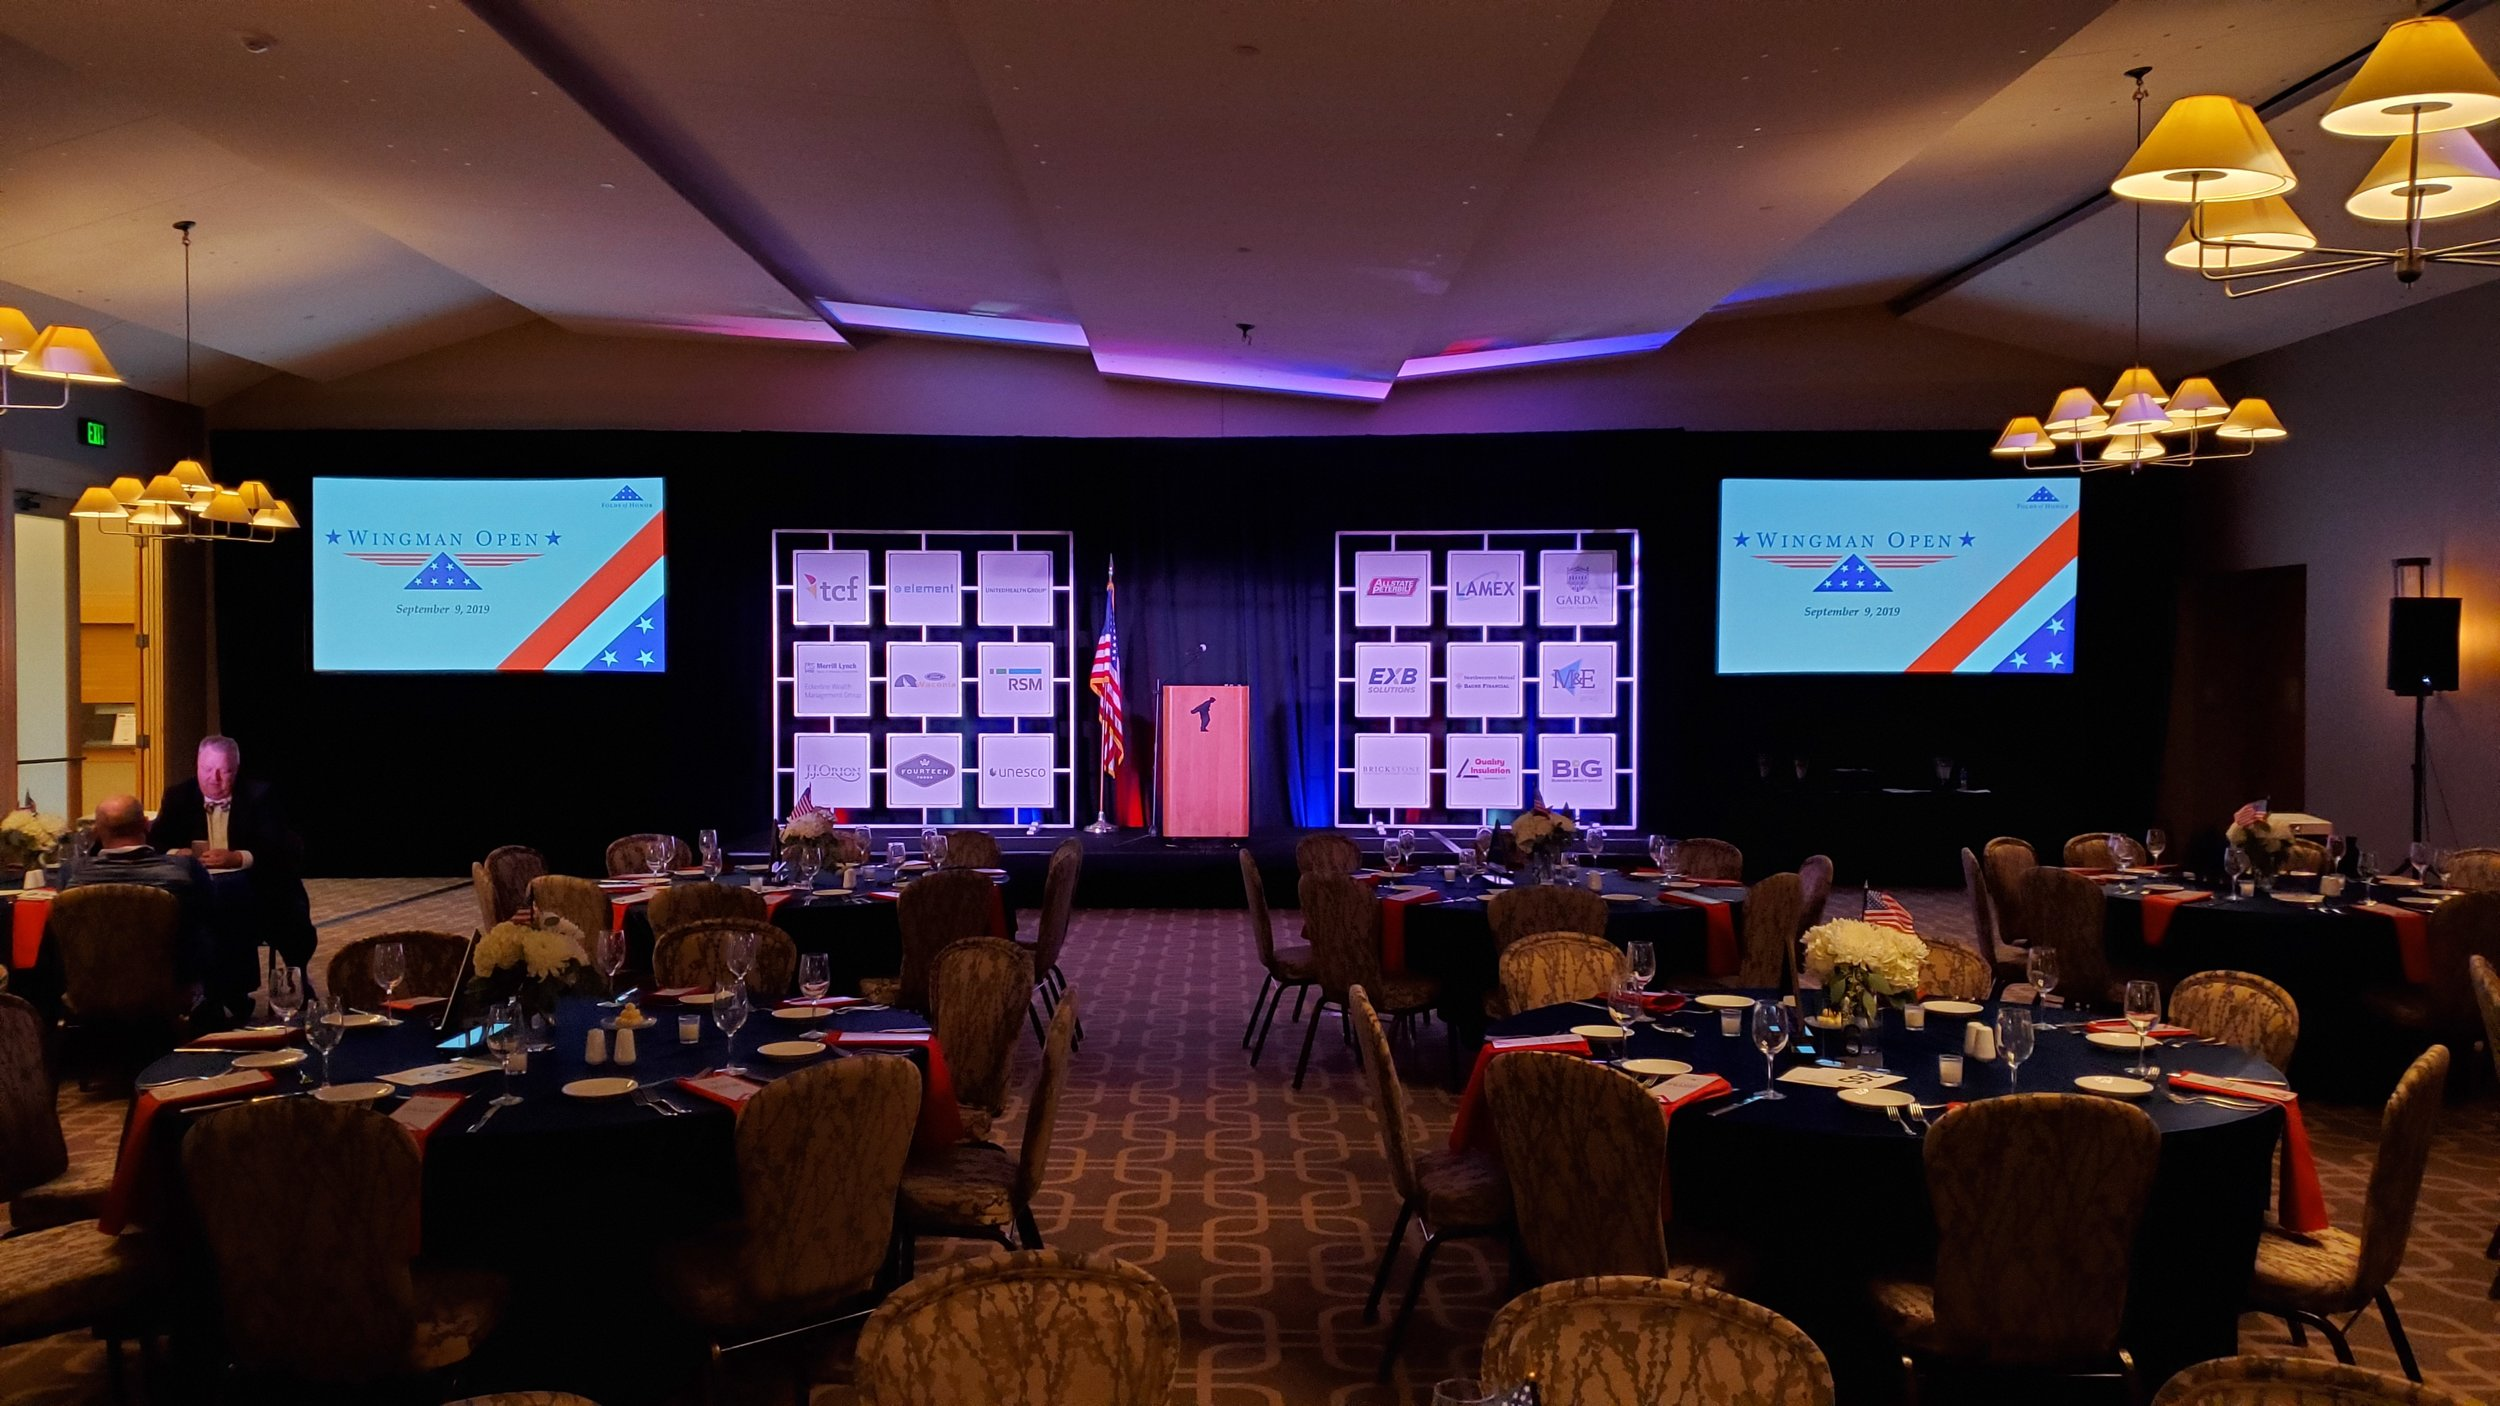 Picture of AV for You Audio Visual Rental Equipment at Folds of Honor Wingman Open in Chaska, MN